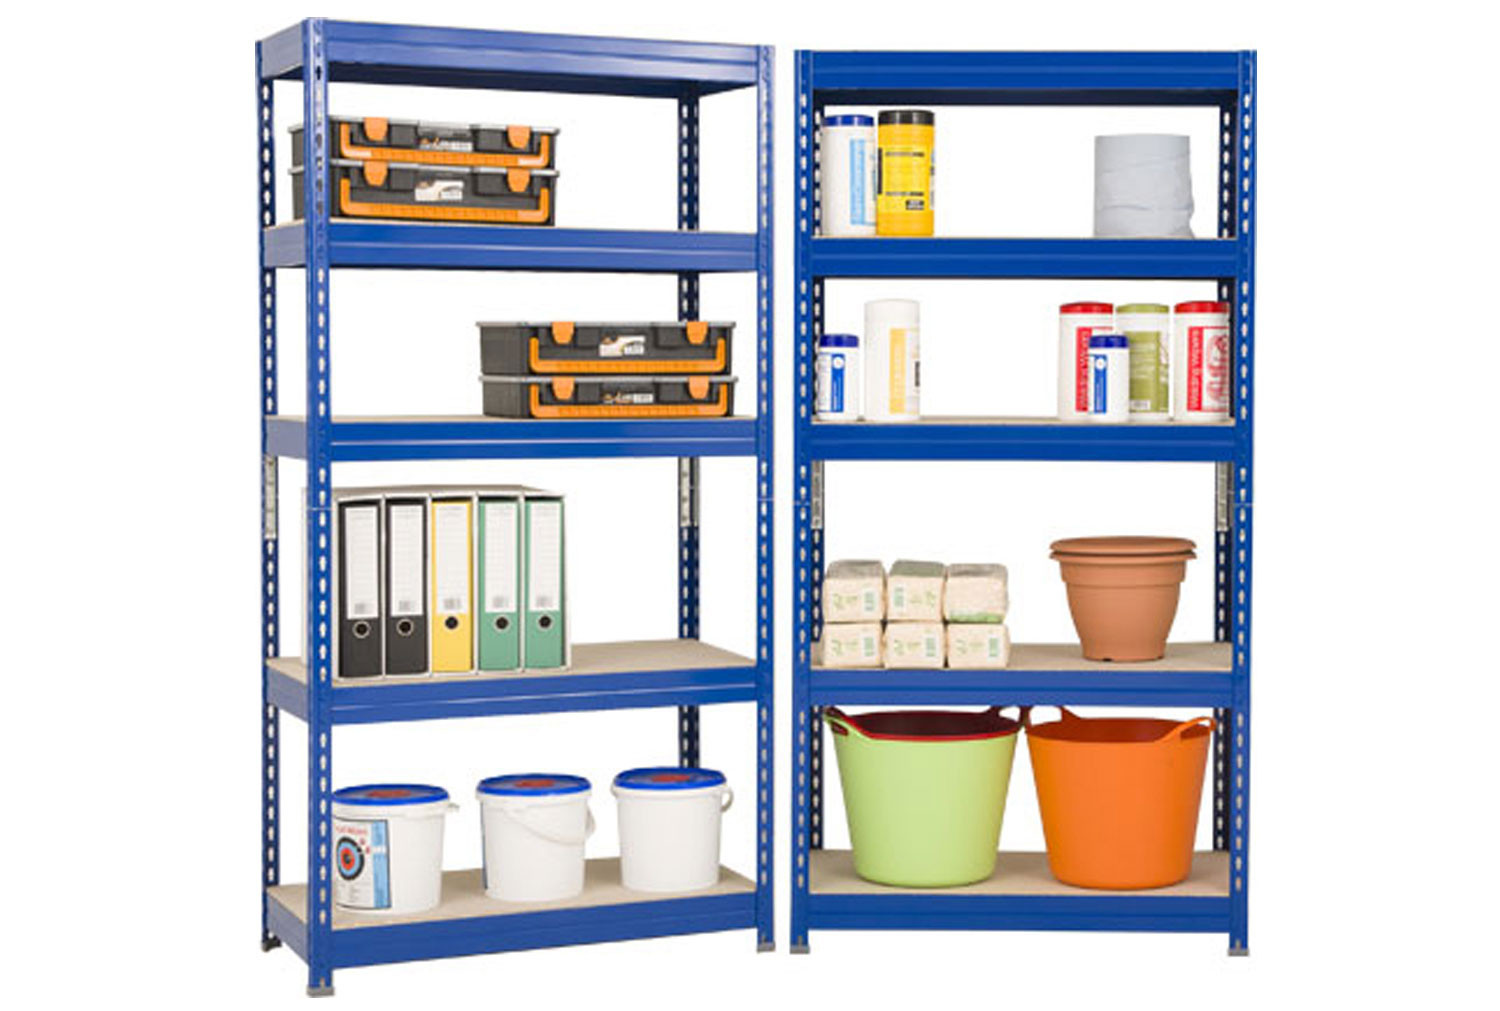 Budget shelving 2 bay bundle deal